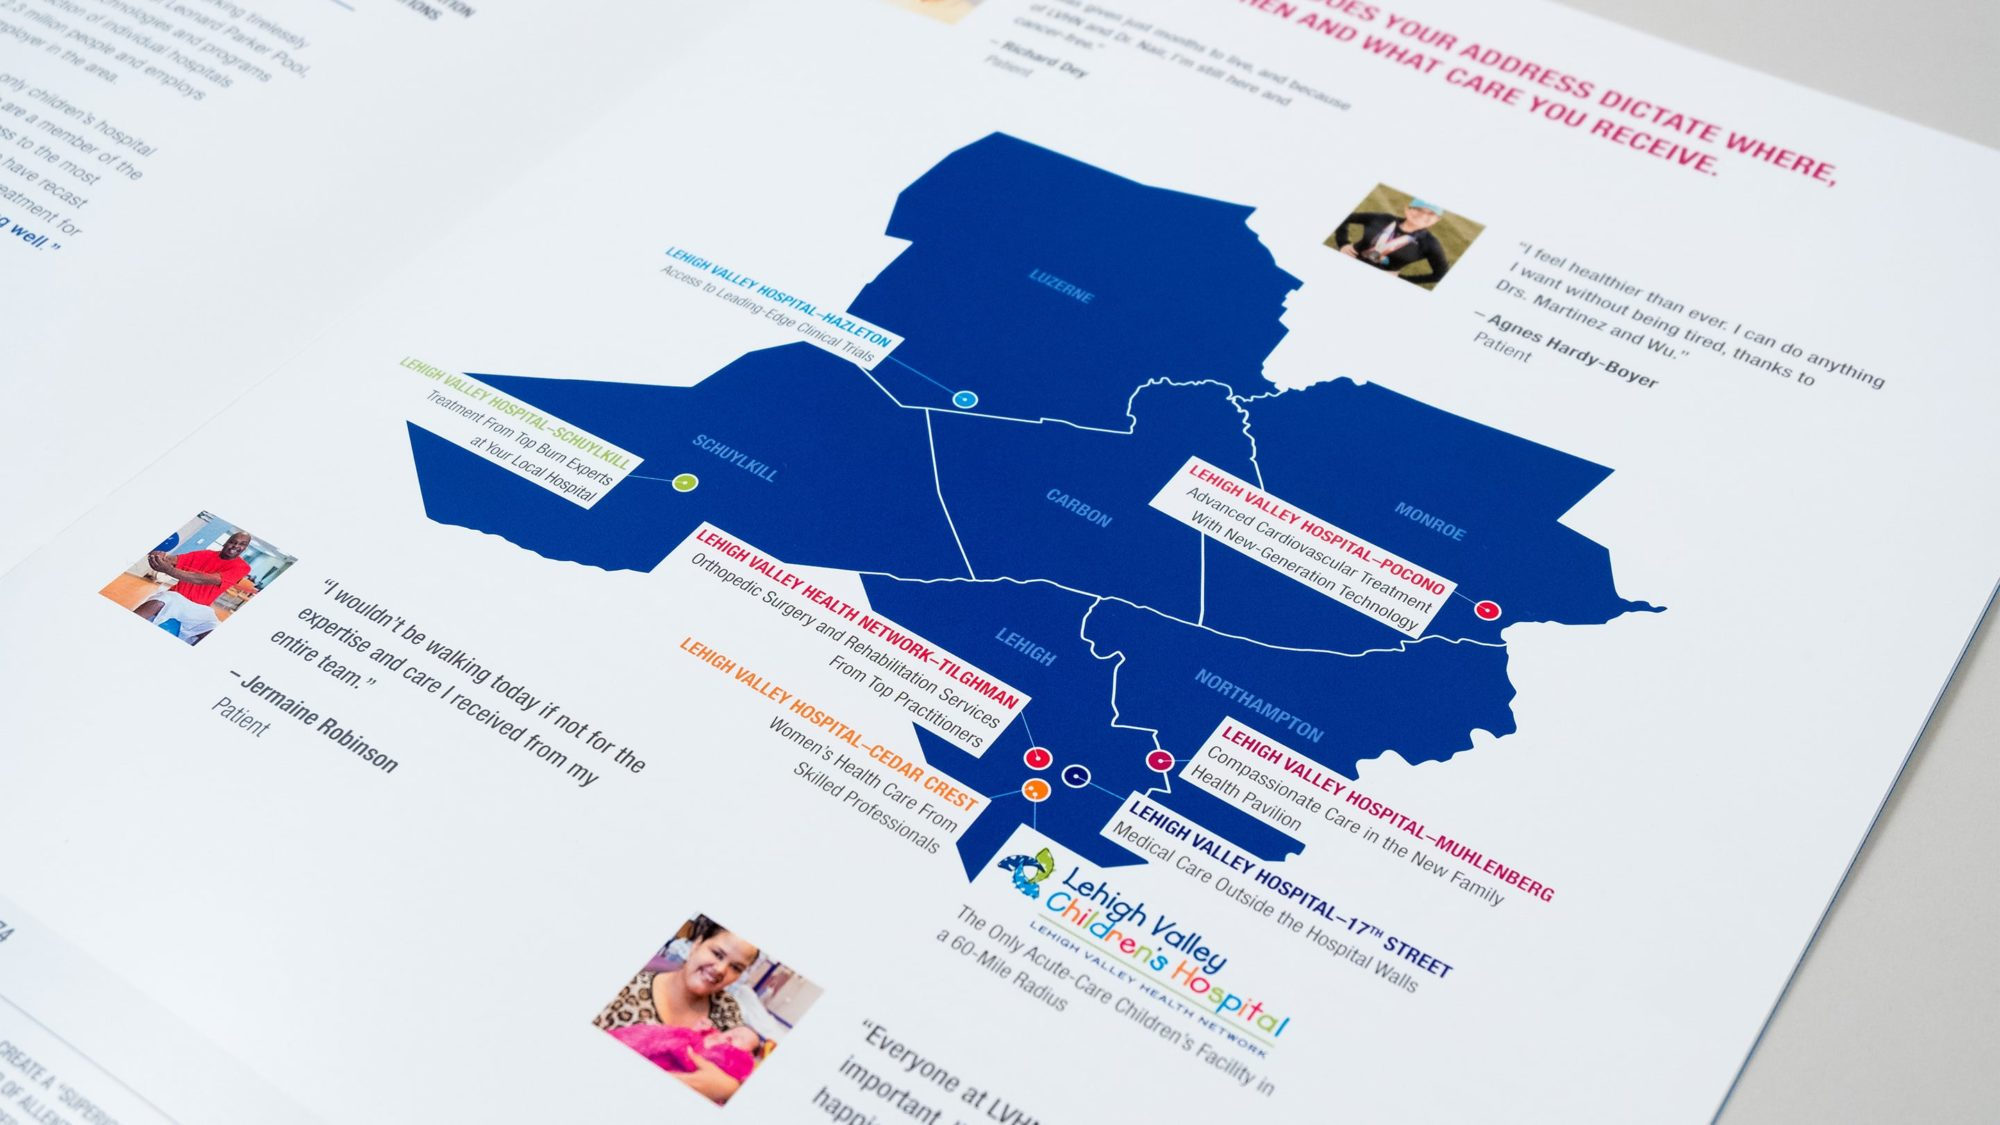 Illustrated map showcasing the locations of hospitals in the network and testimonials from satisfied patients